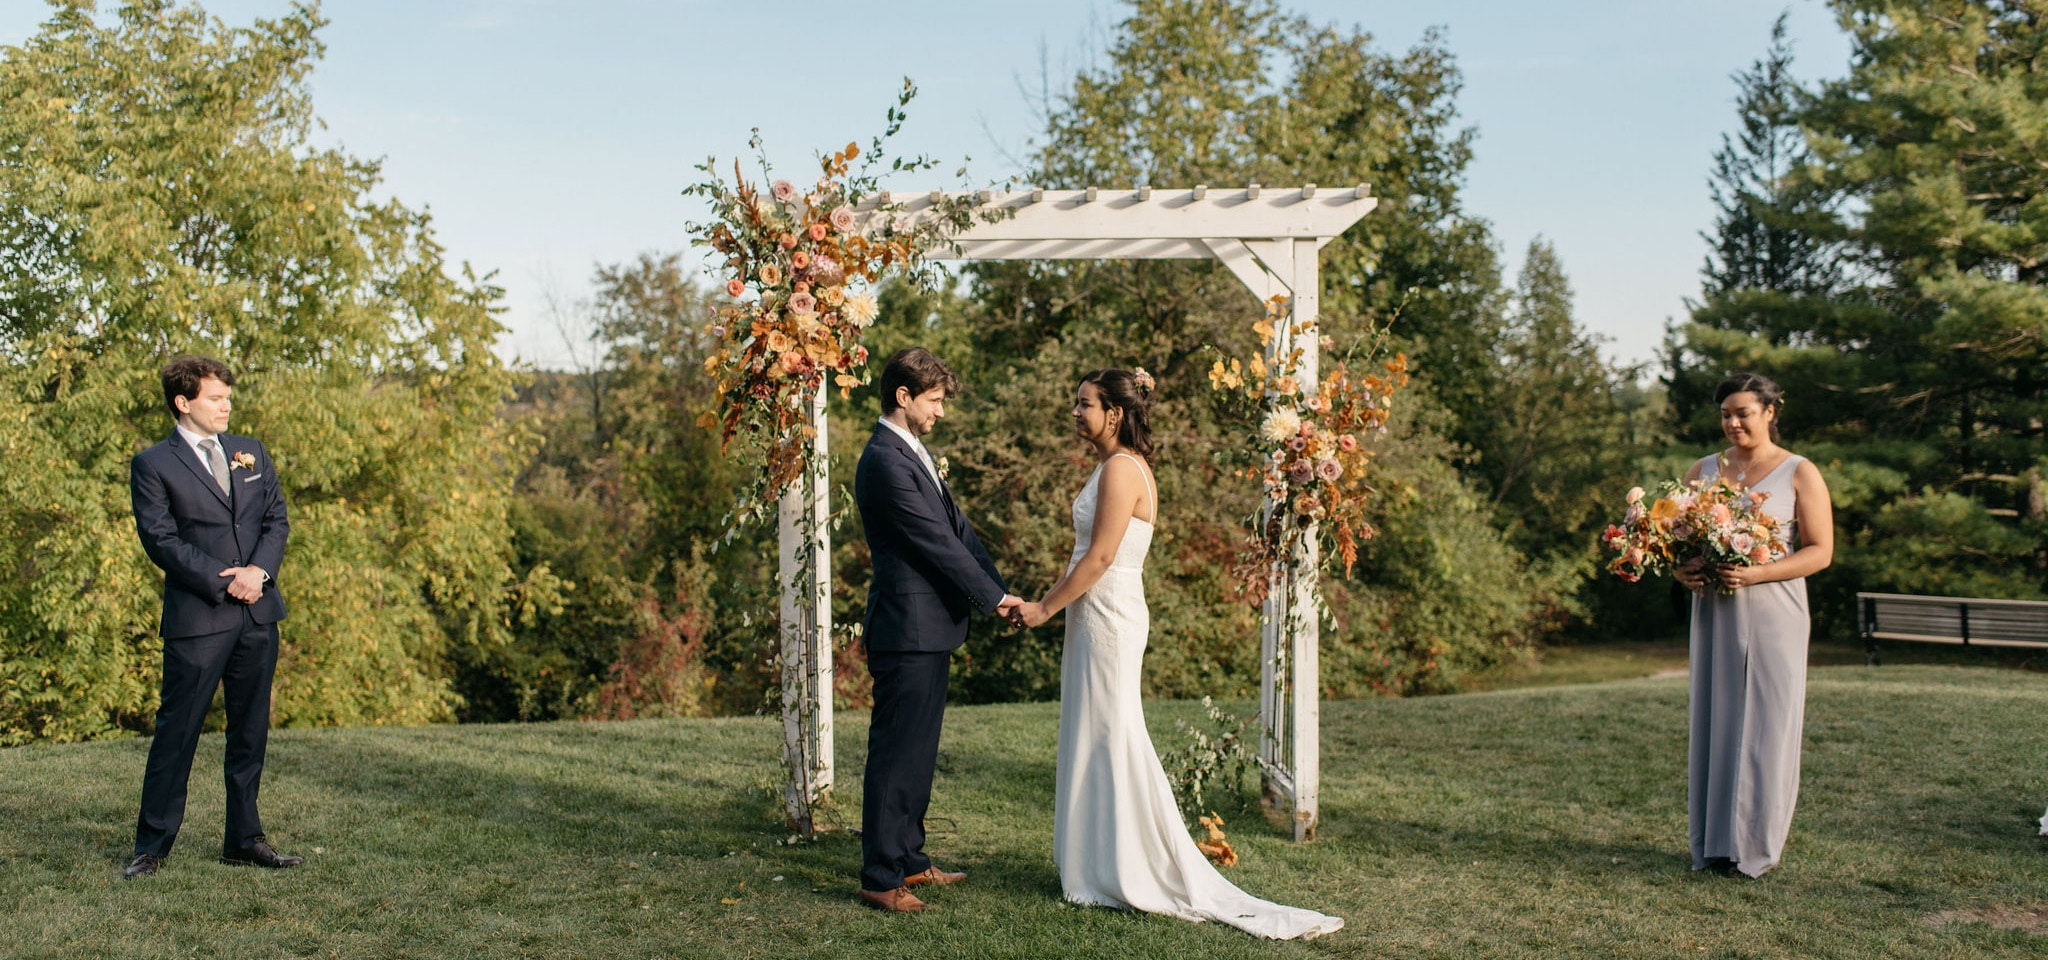 Hero image for Nicky and Ben's Sweet Intimate Micro-Wedding at McMichael Canadian Art Collection